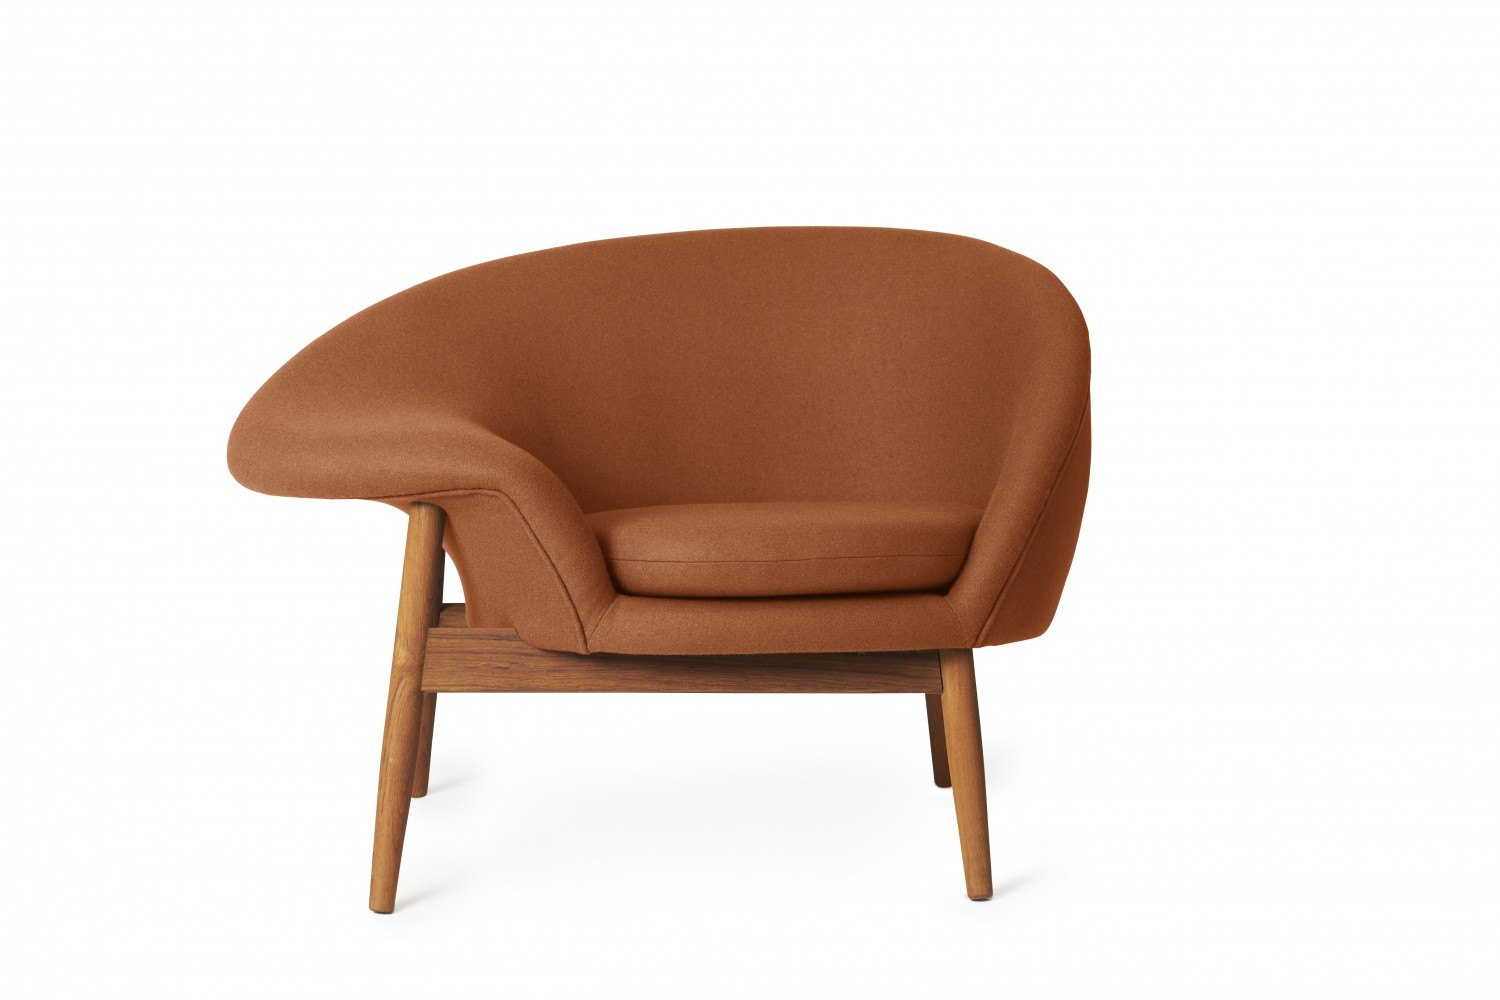 2201033-warmnordic-furniture-friedegg-loungechair-teak-caramel-01